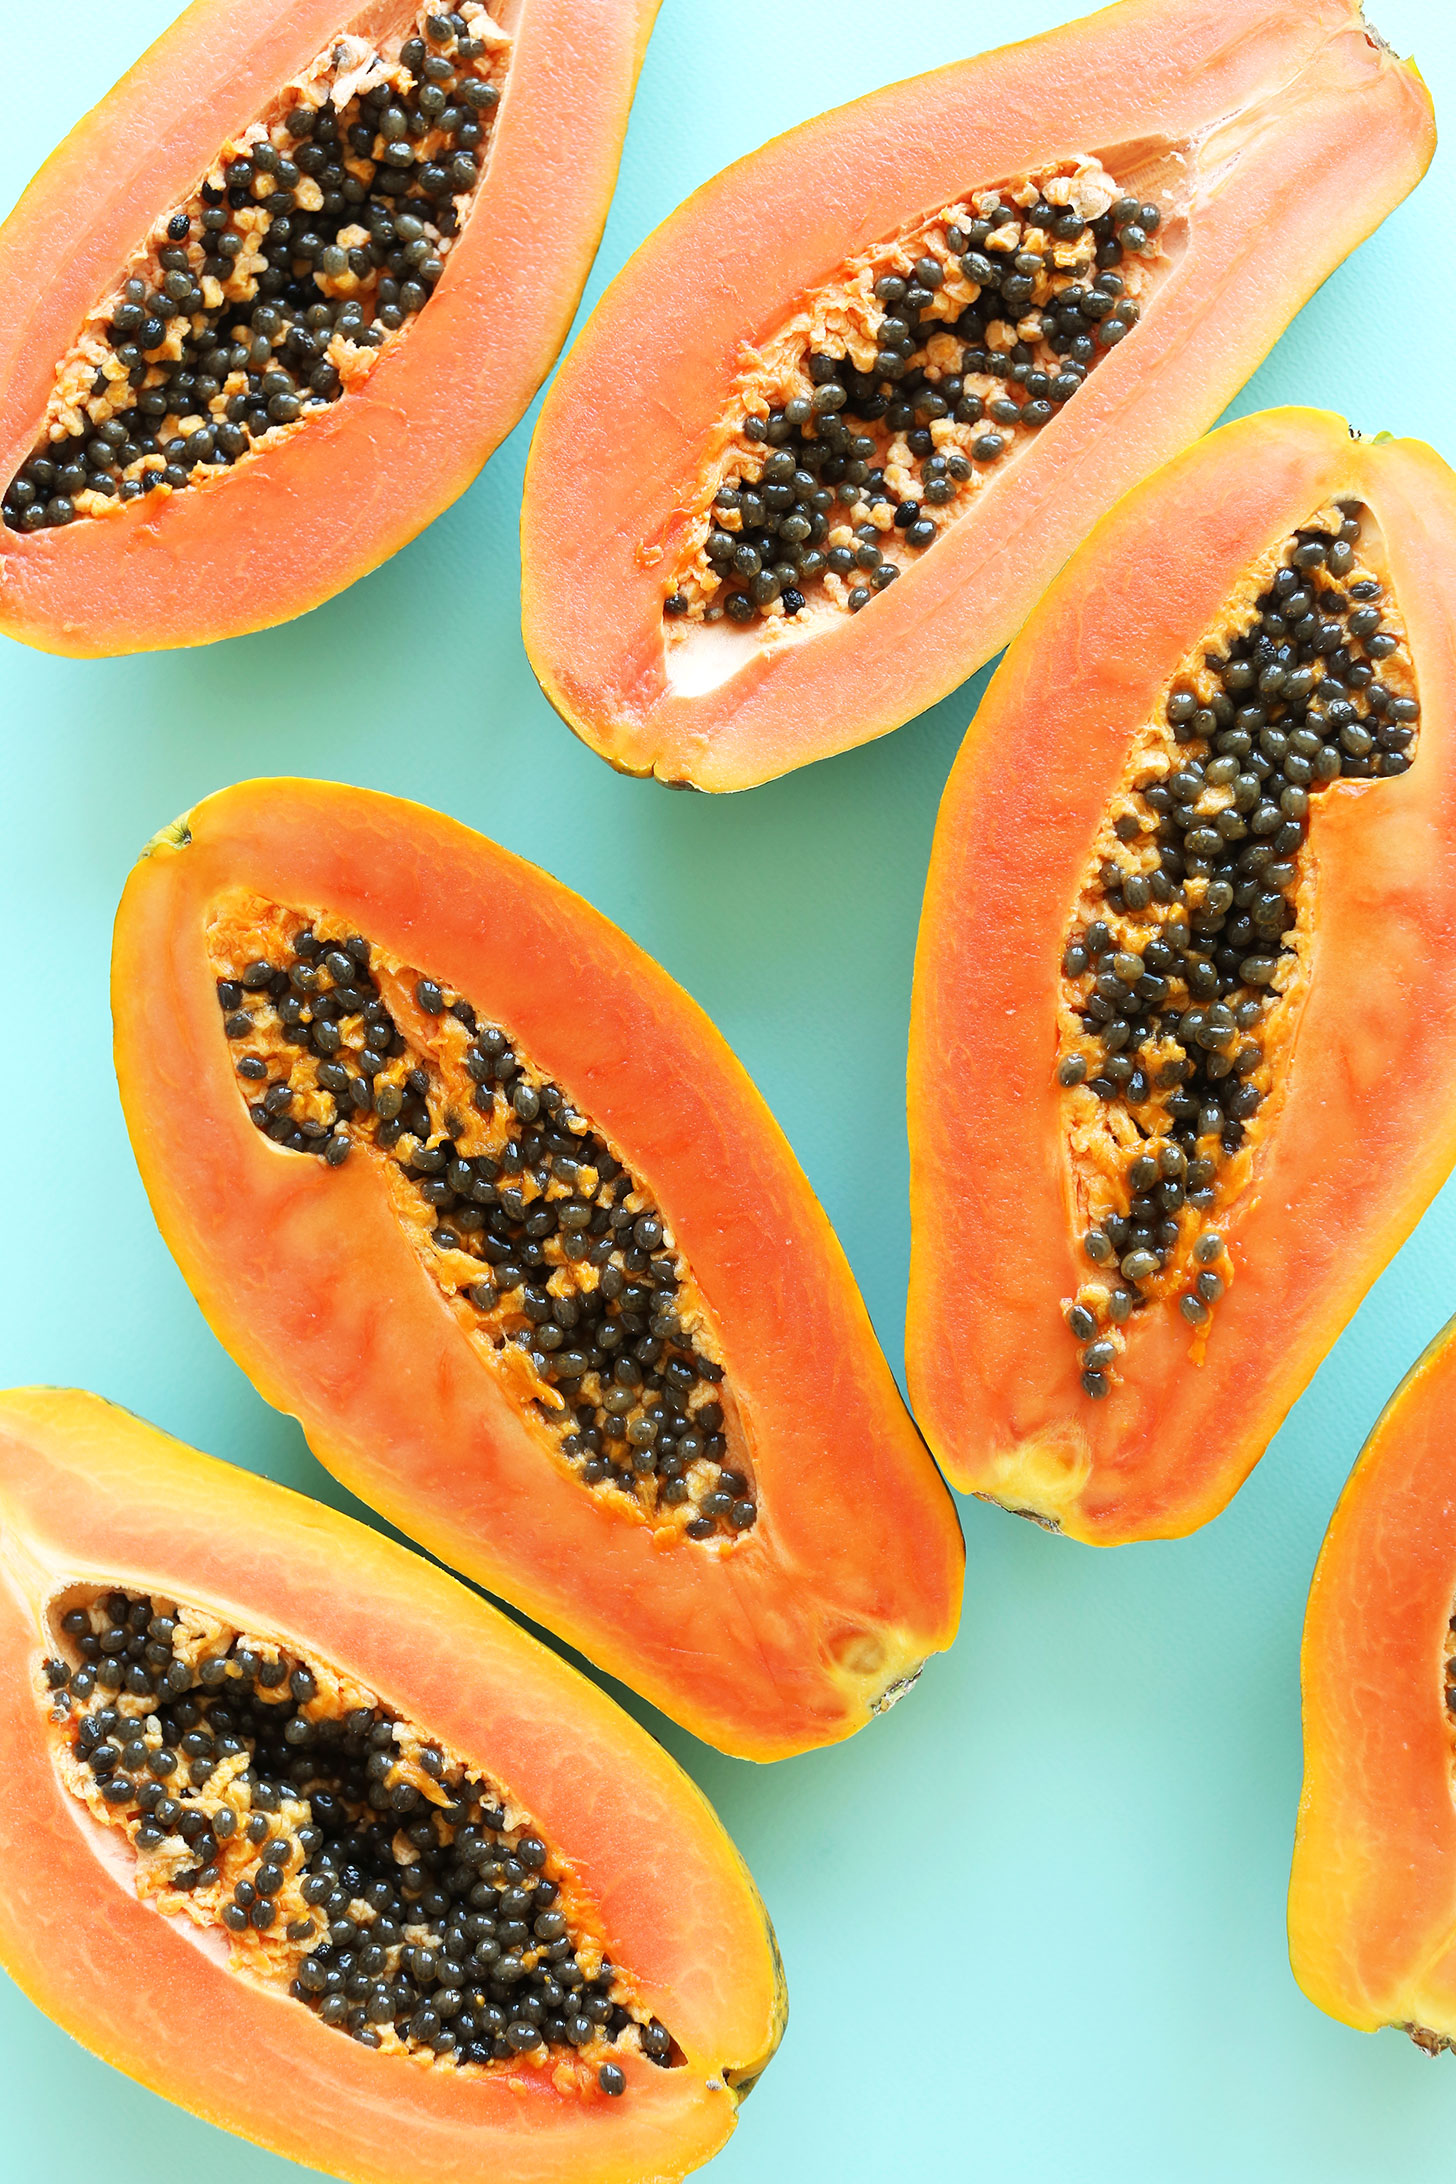 Sliced papaya fruit photo